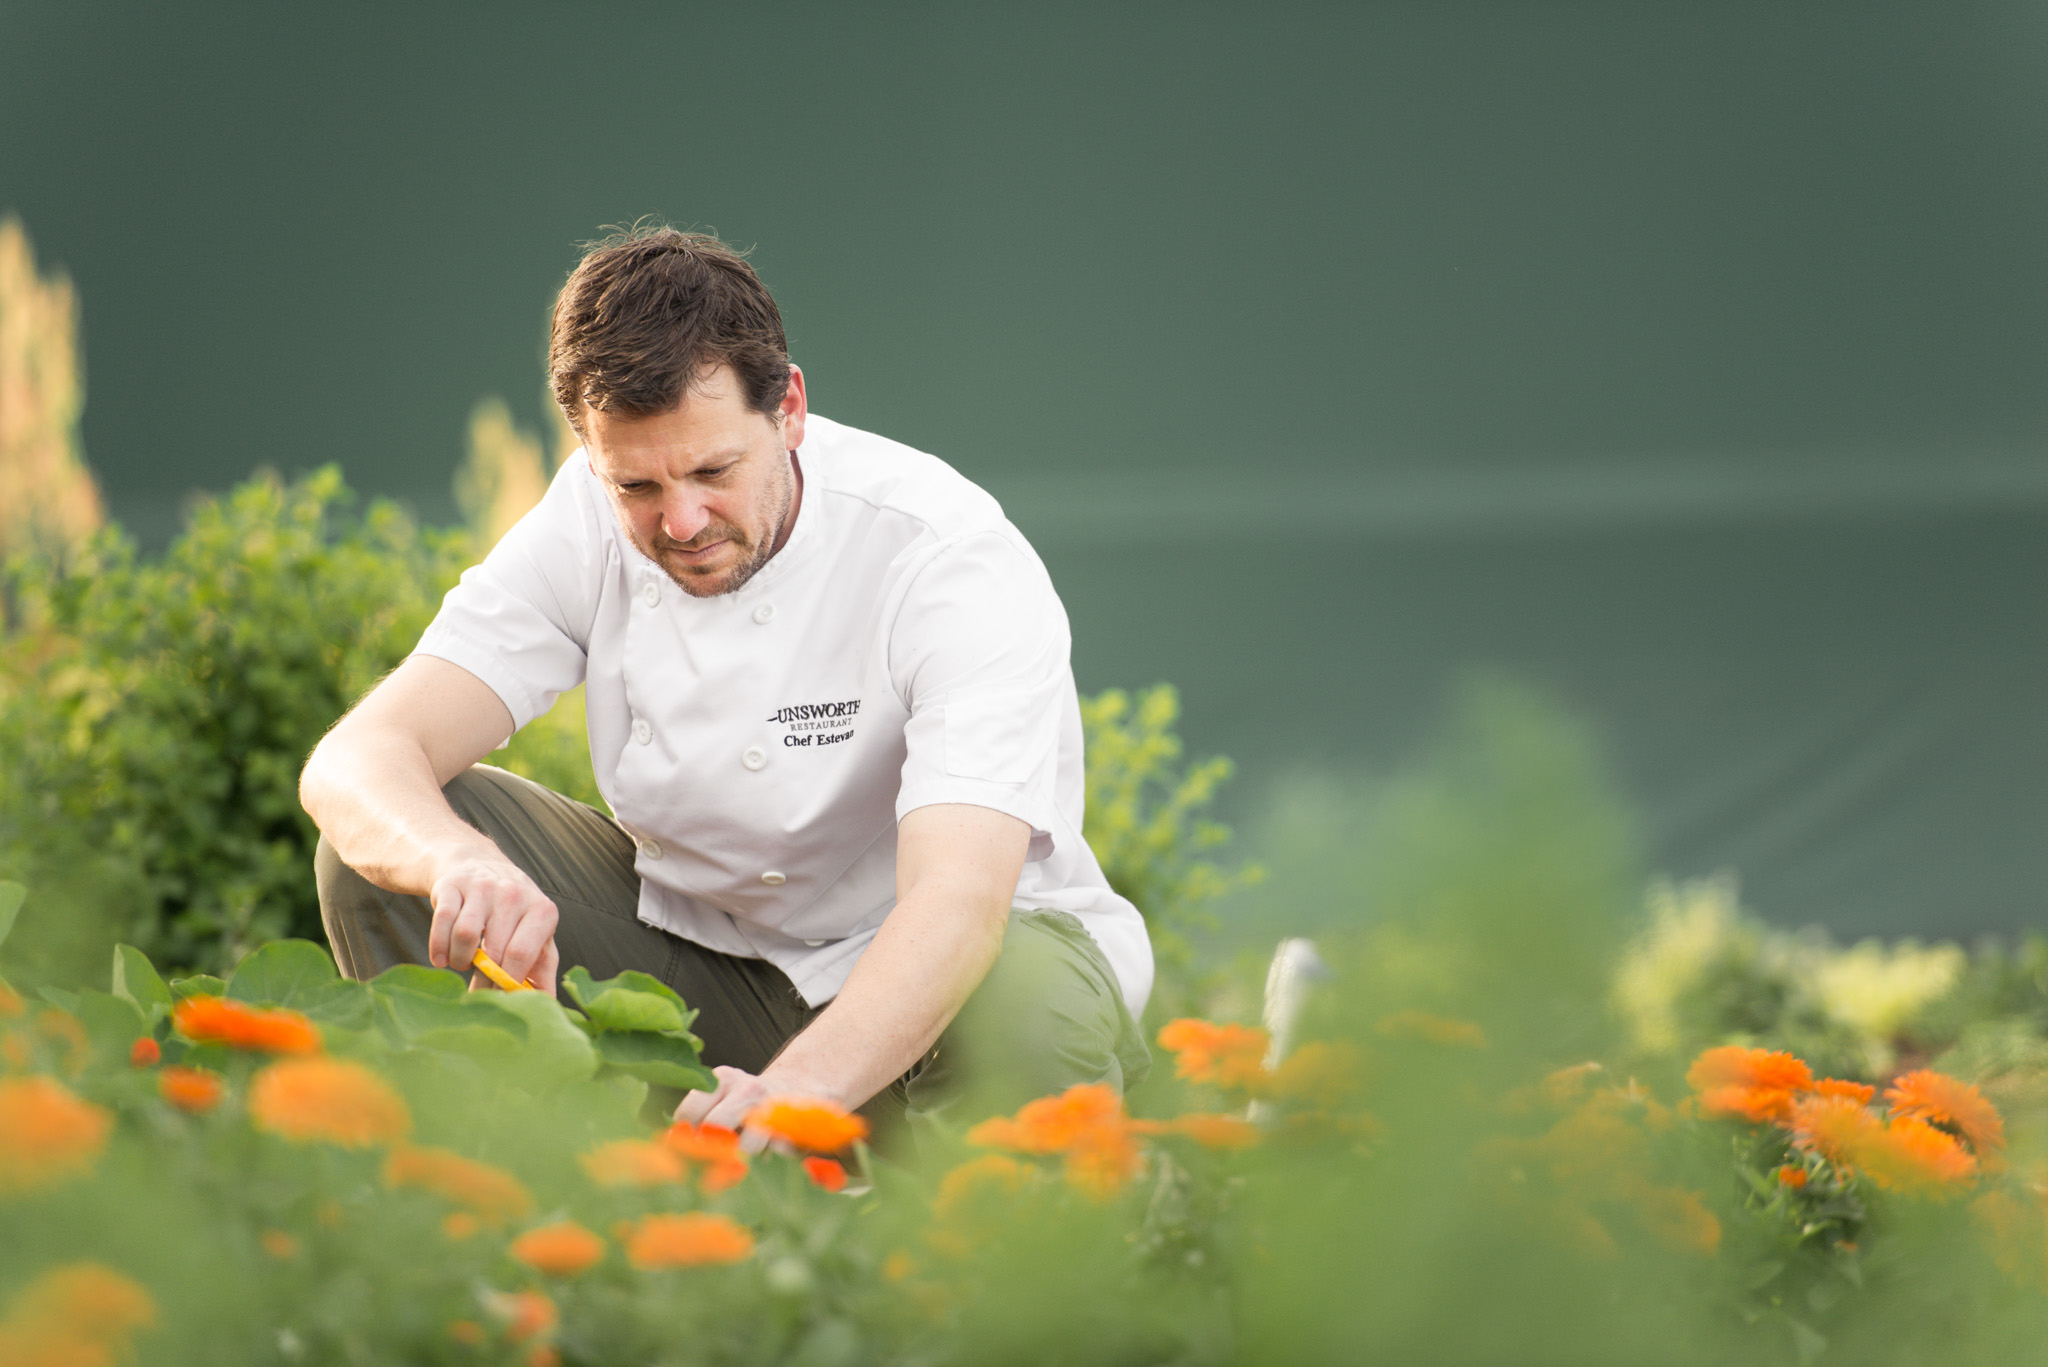 Chef Steve Elskins at Unsworth Restaurant